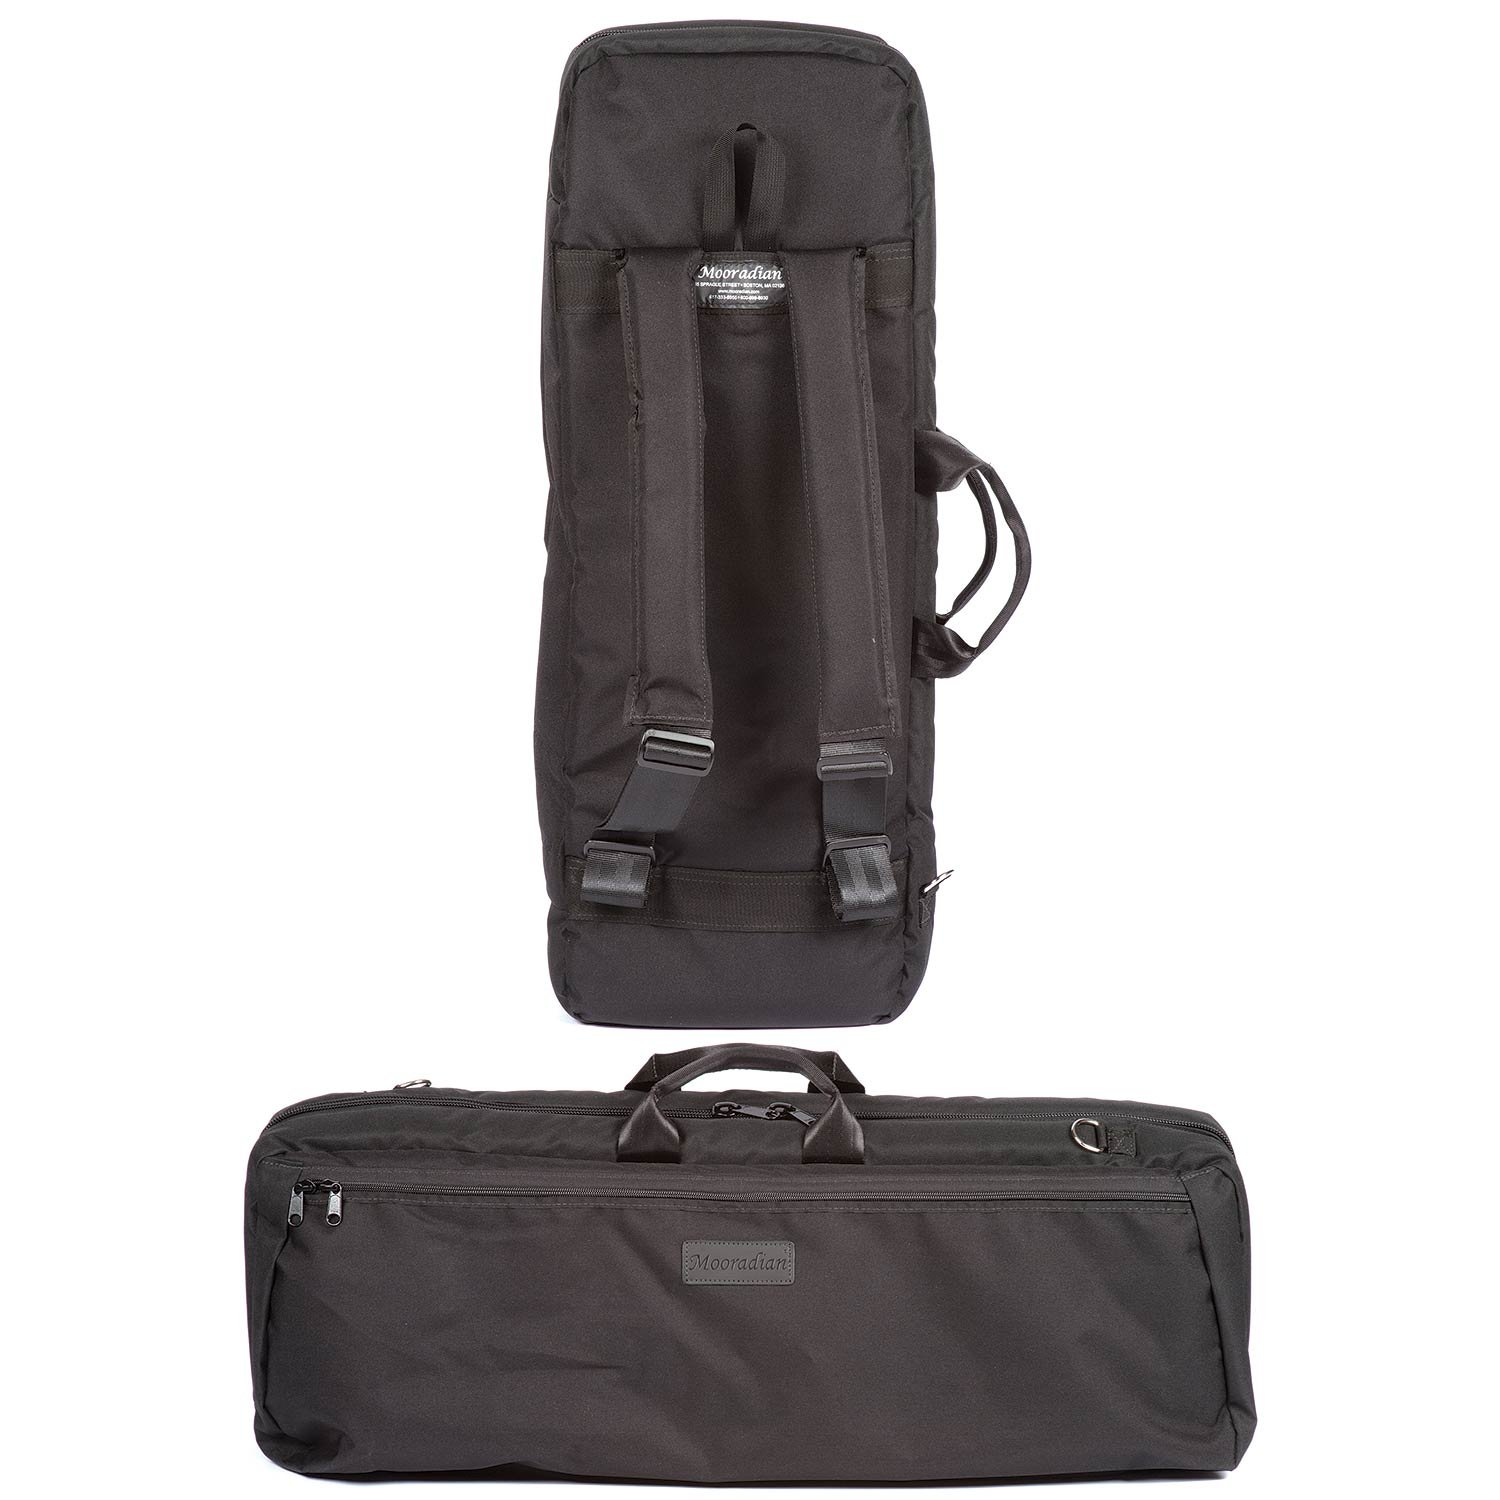 Mooradian Black Oblong Slip-On 4/4 Violin Case Cover with Padded Back-Pack Straps by Mooradian (Image #1)